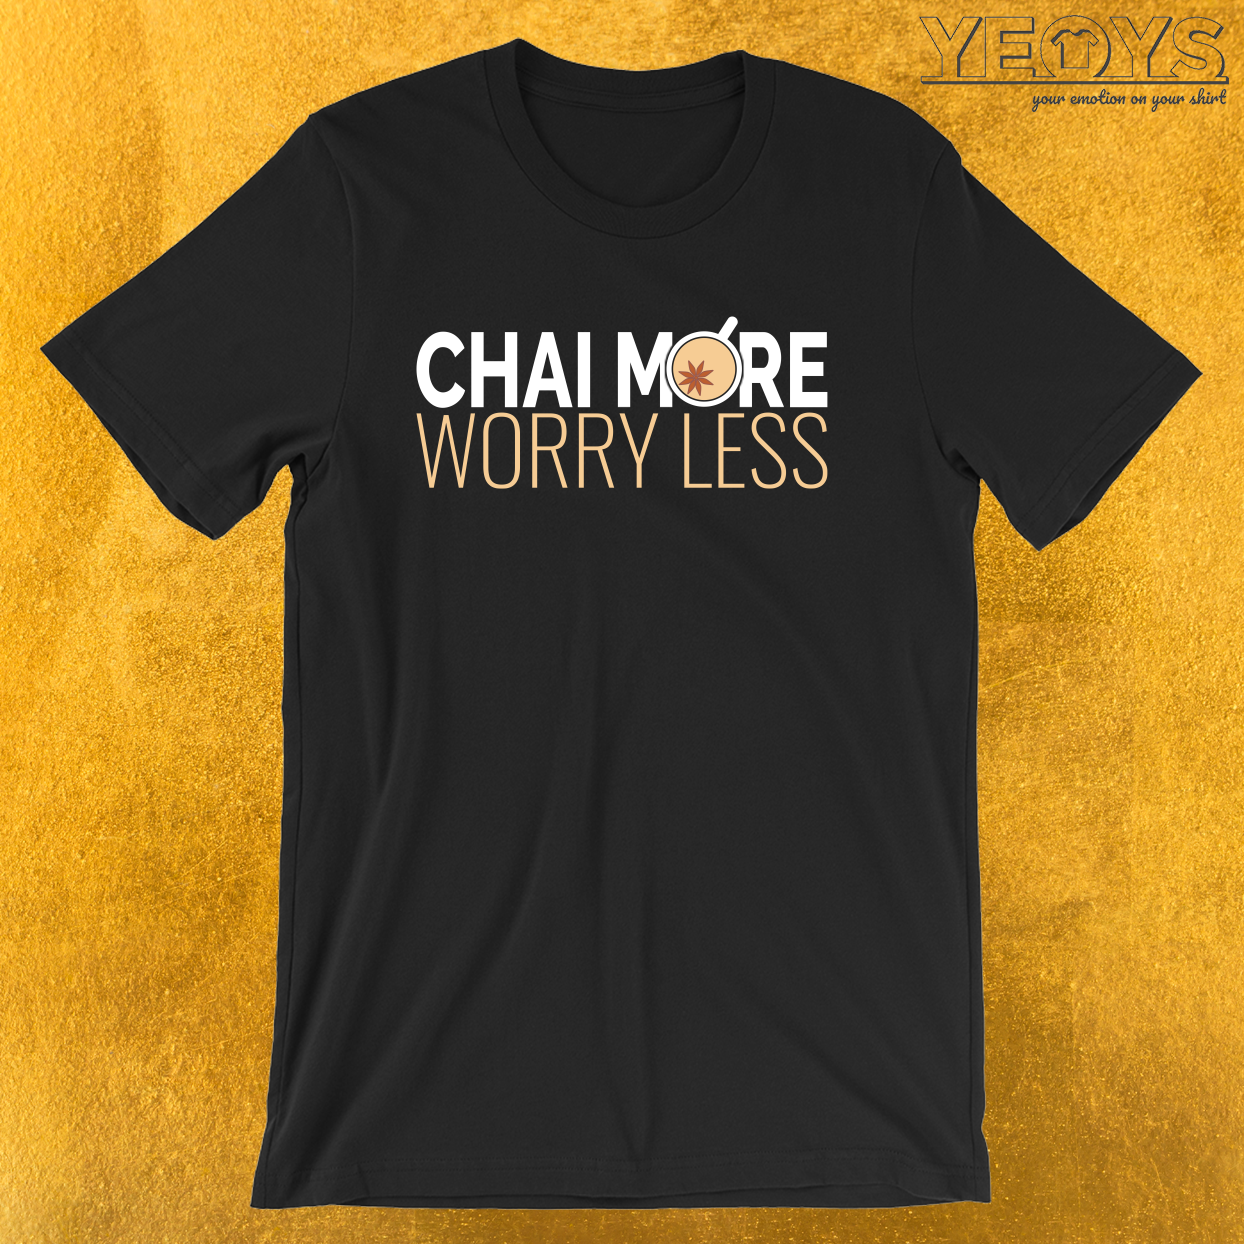 Chai More Worry Less – Chai Tea Tee